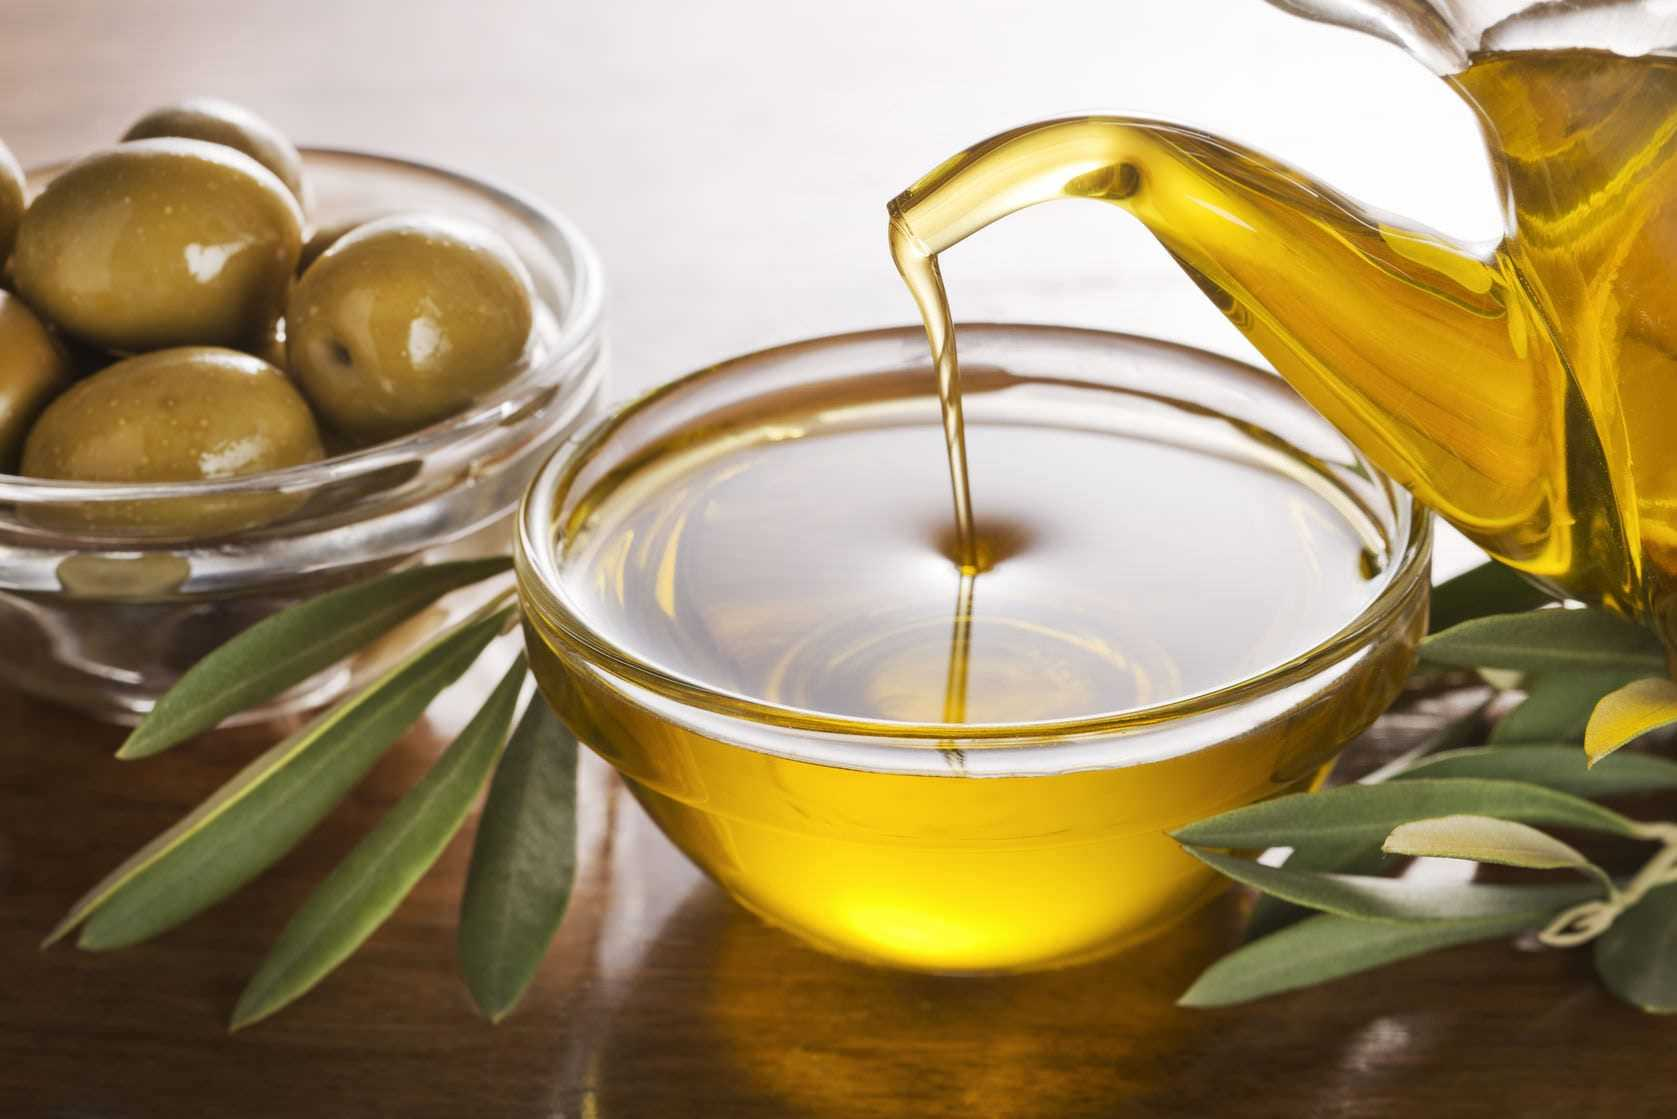 Of extra virgin olive oil for